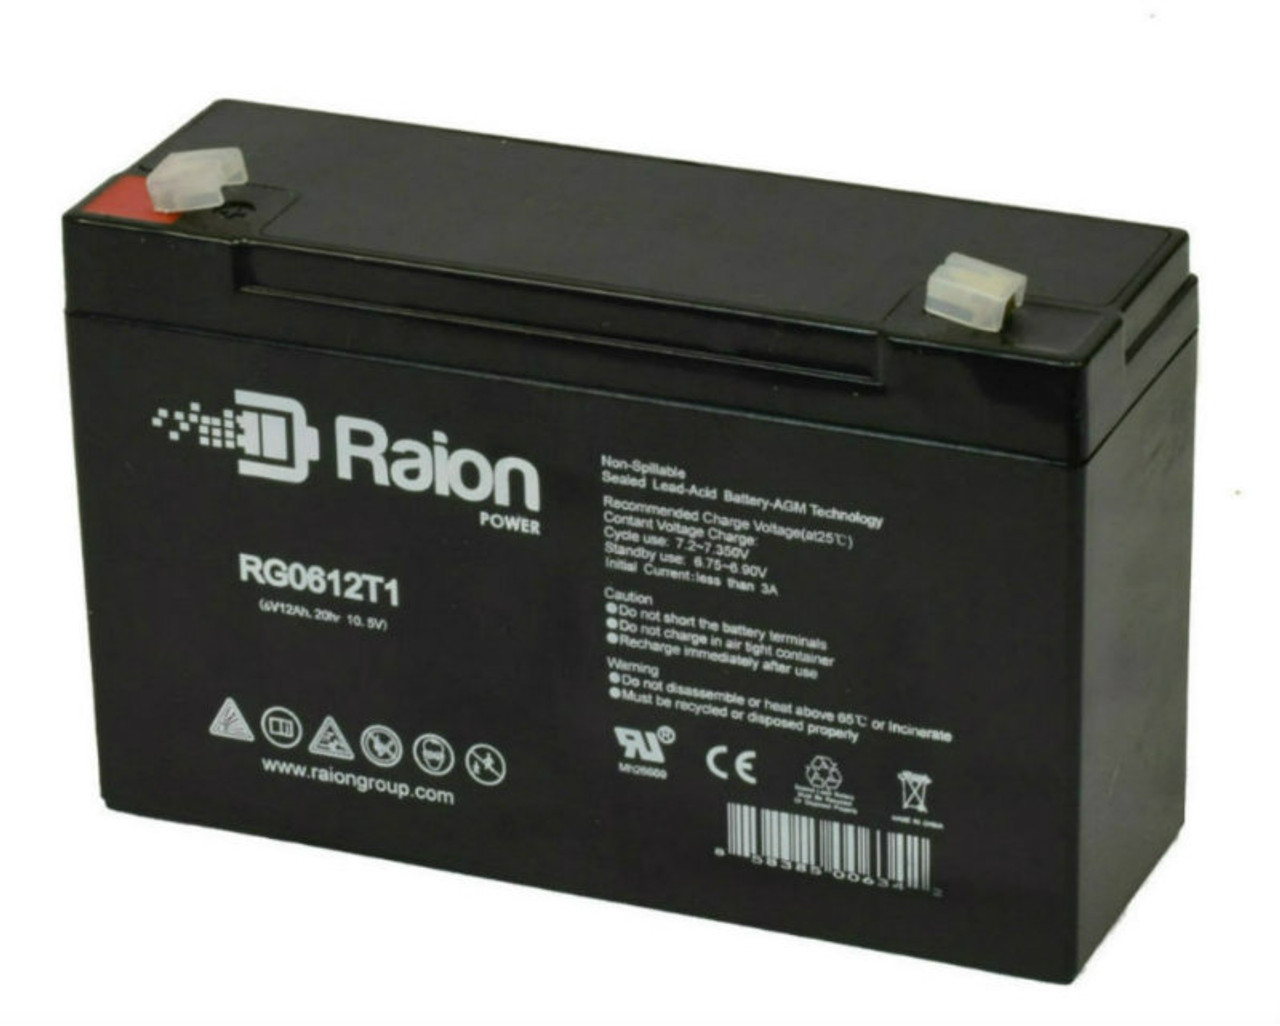 Raion Power RG06120T1 Replacement Battery Pack for Sonnenschein NGA5060010HSOSA emergency light